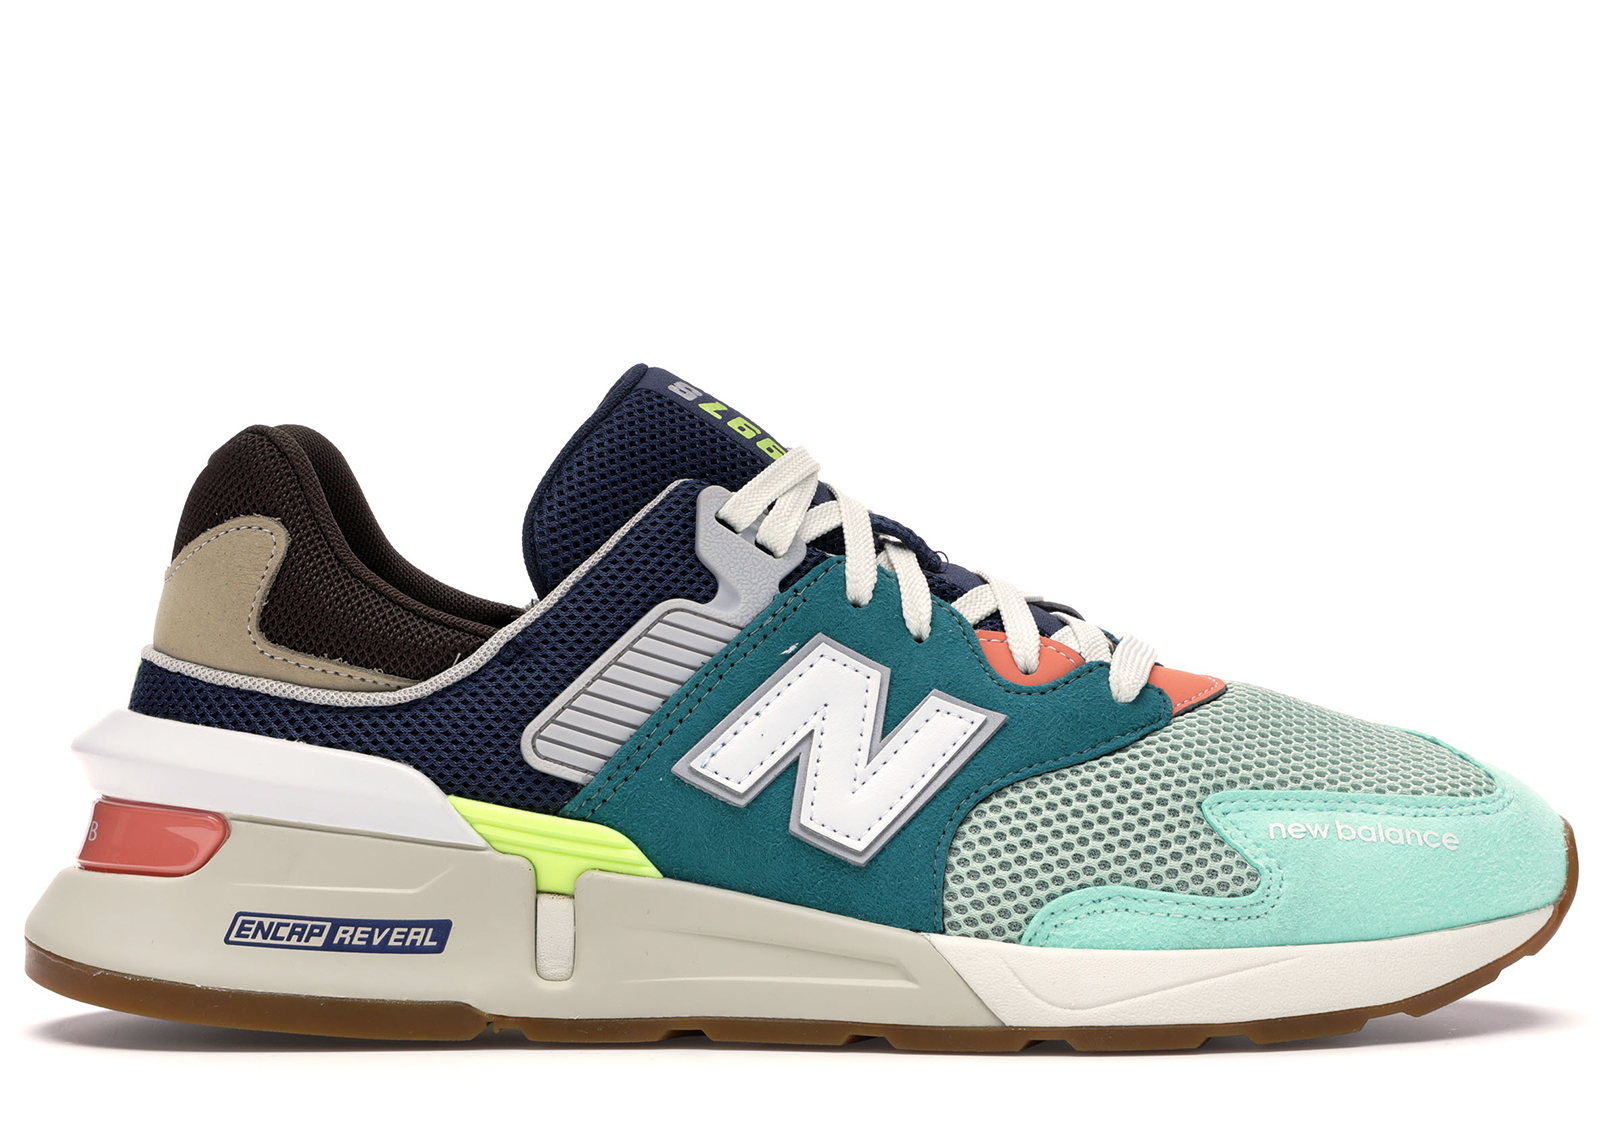 New Balance 997 Sport Teal Brown - MS997JHY